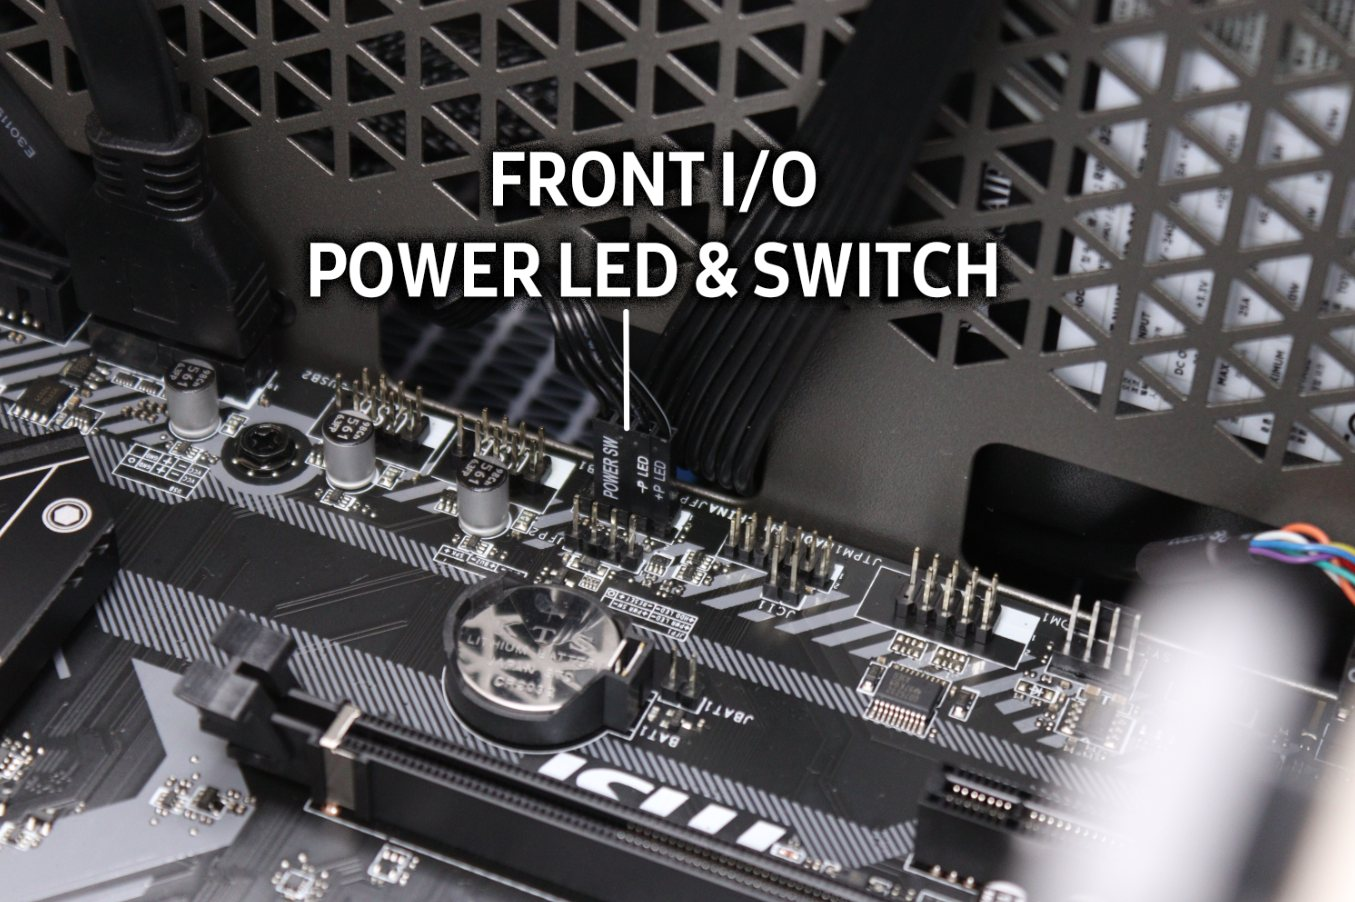 Case Front I/O Power LED Switch